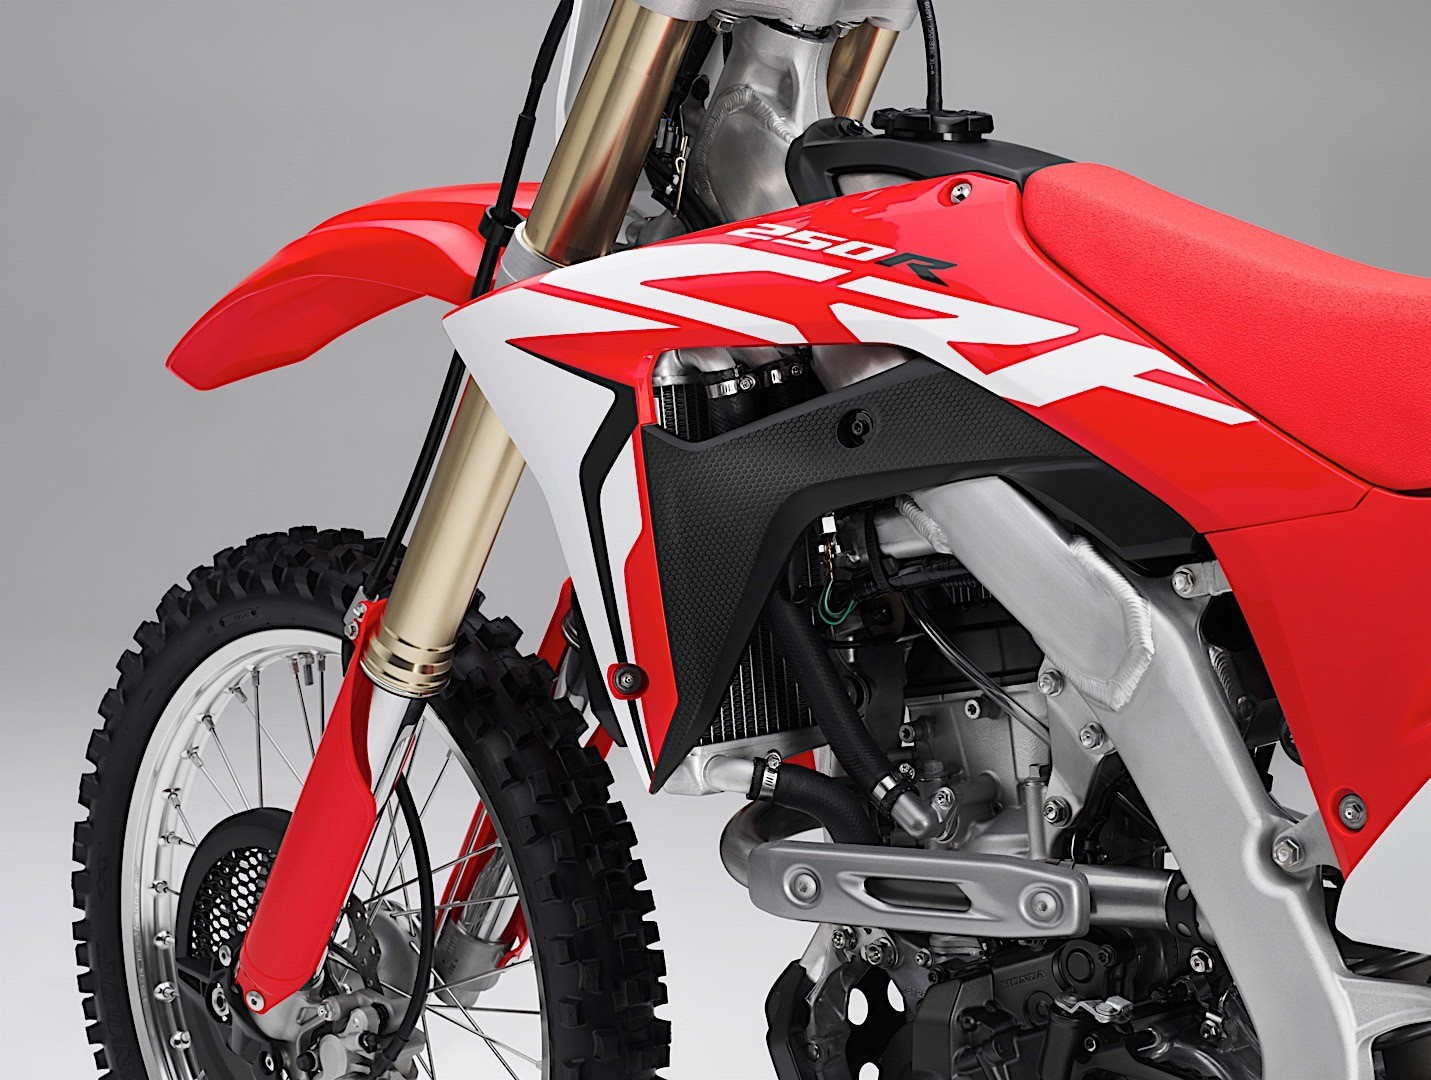 2018 honda crf250r gets new engine with better top end power autoevolution. Black Bedroom Furniture Sets. Home Design Ideas